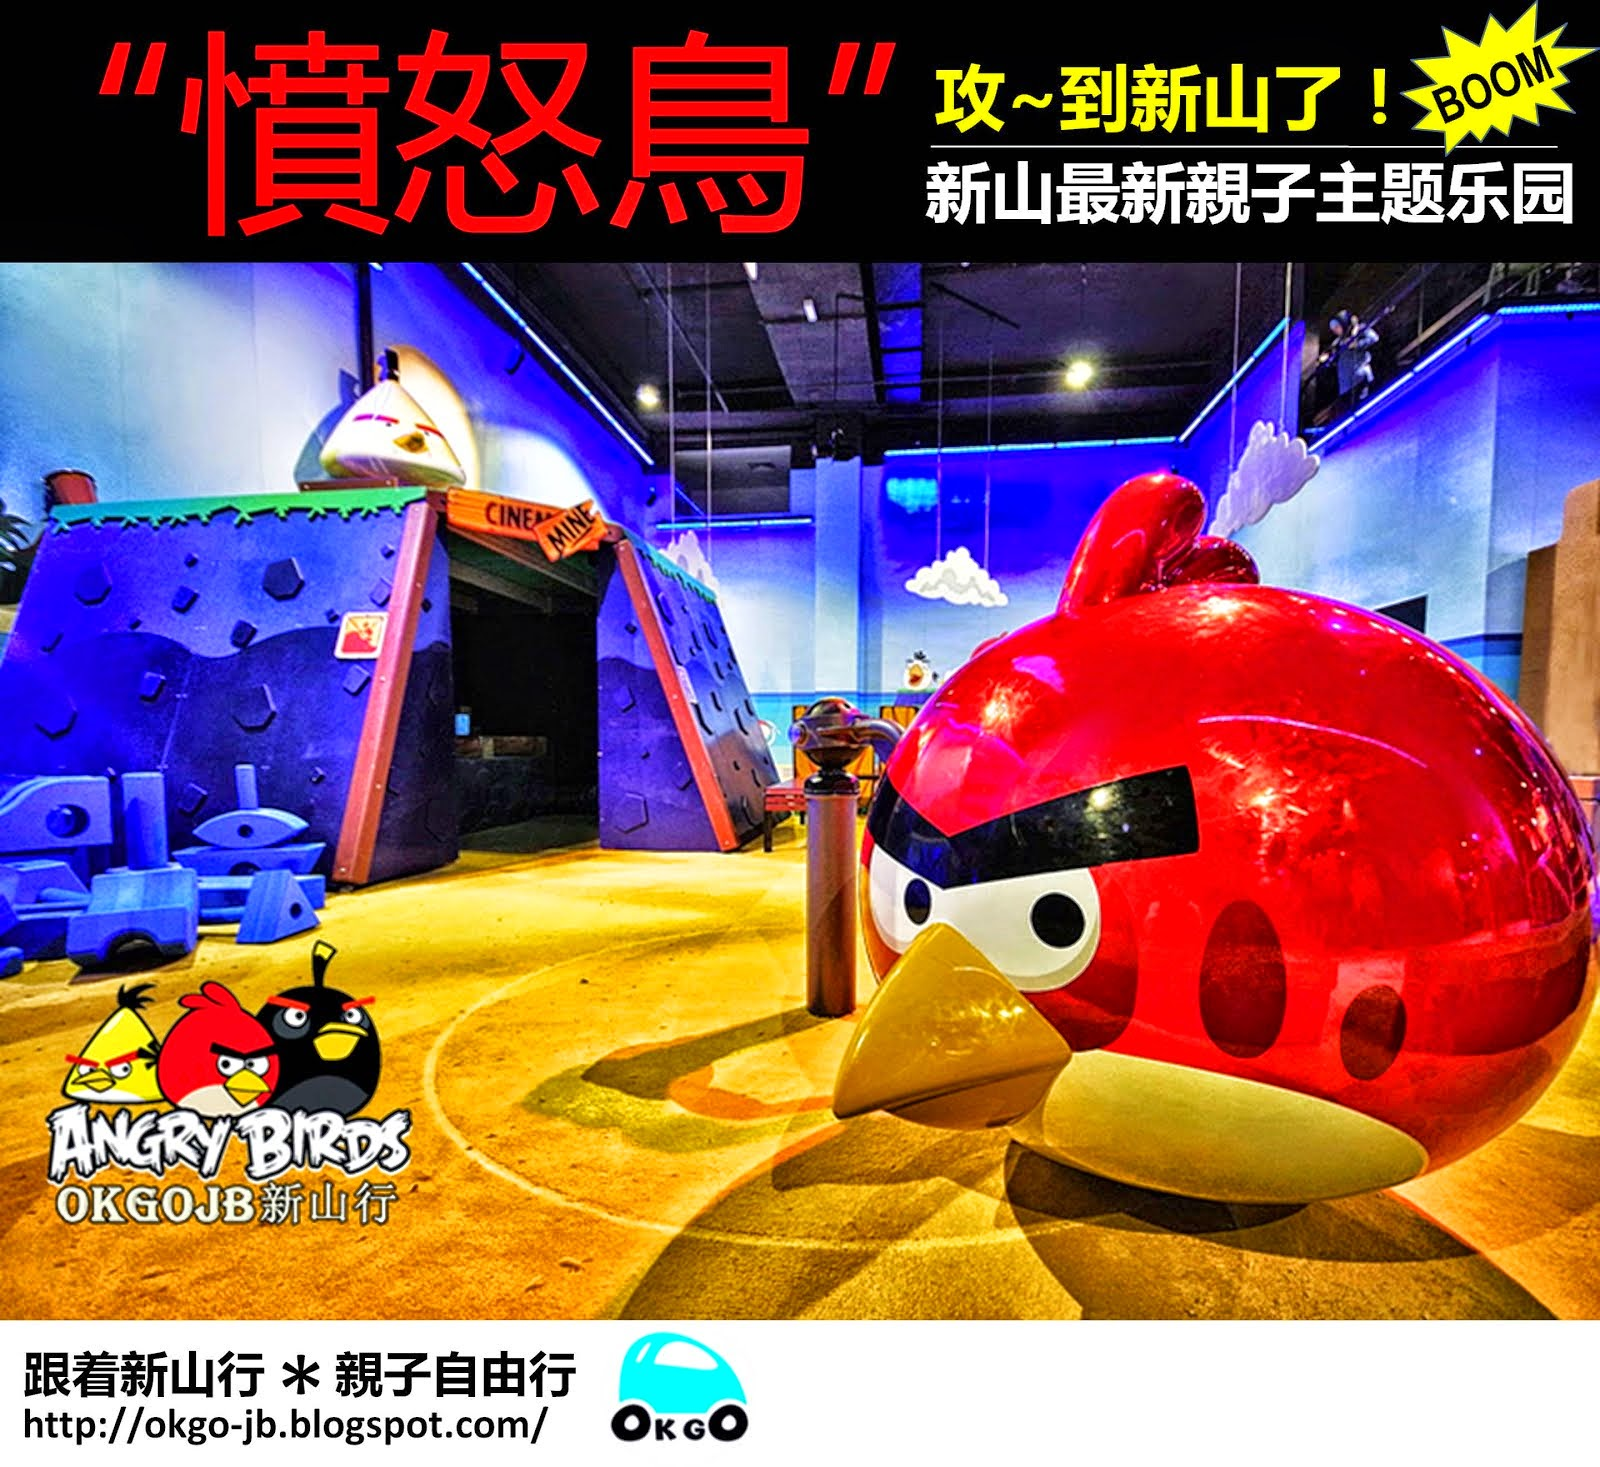 【愤怒鸟主题乐园】现场直击!South East Asia's First Angry Bird Activity Theme Park !